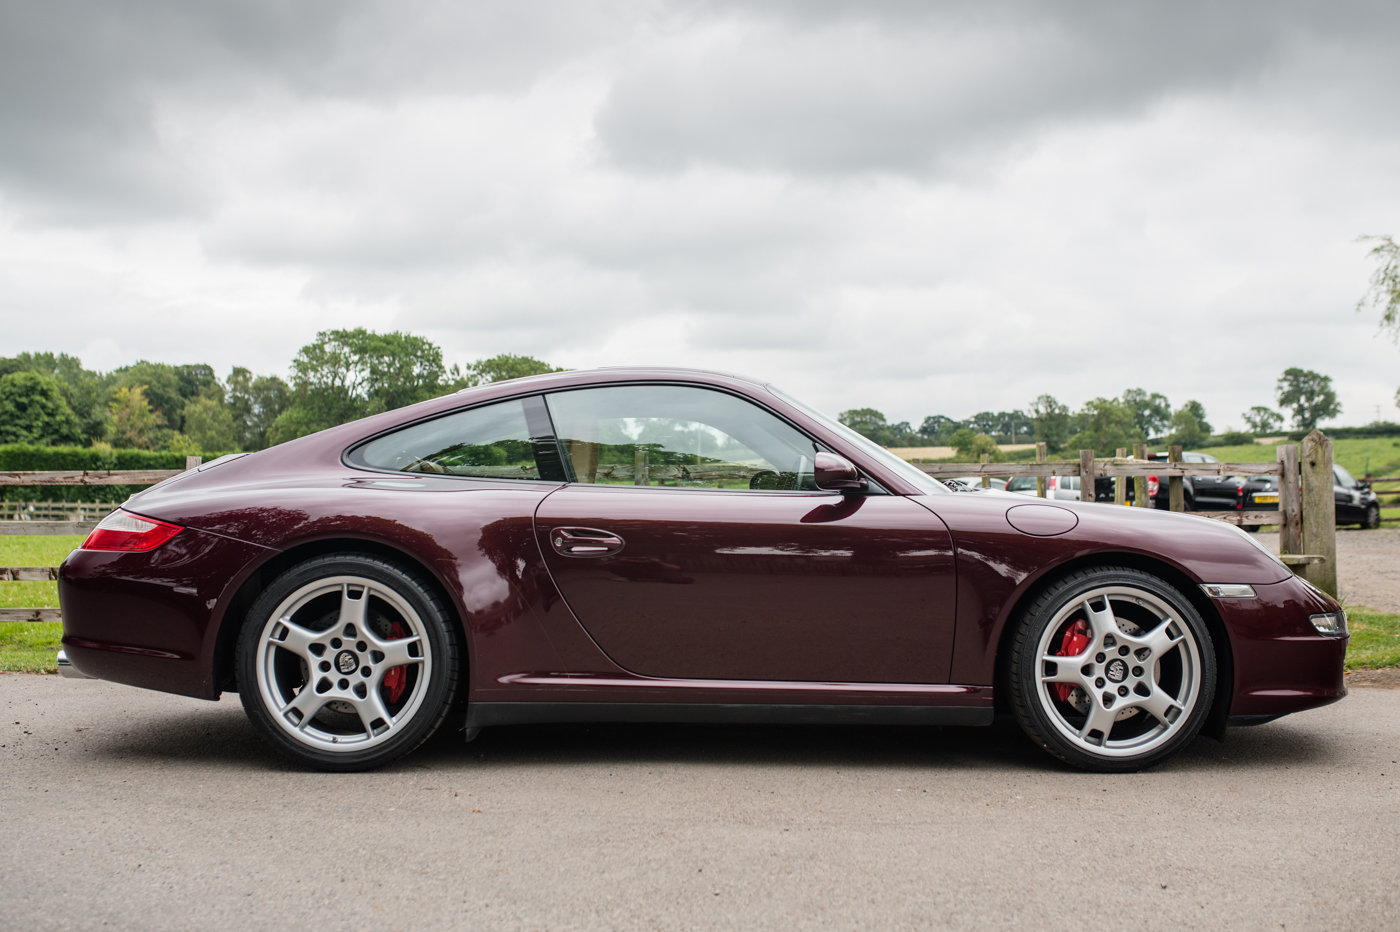 2006 PORSCHE 997 C4S 6 SPEED MANUAL SOLD (picture 2 of 6)